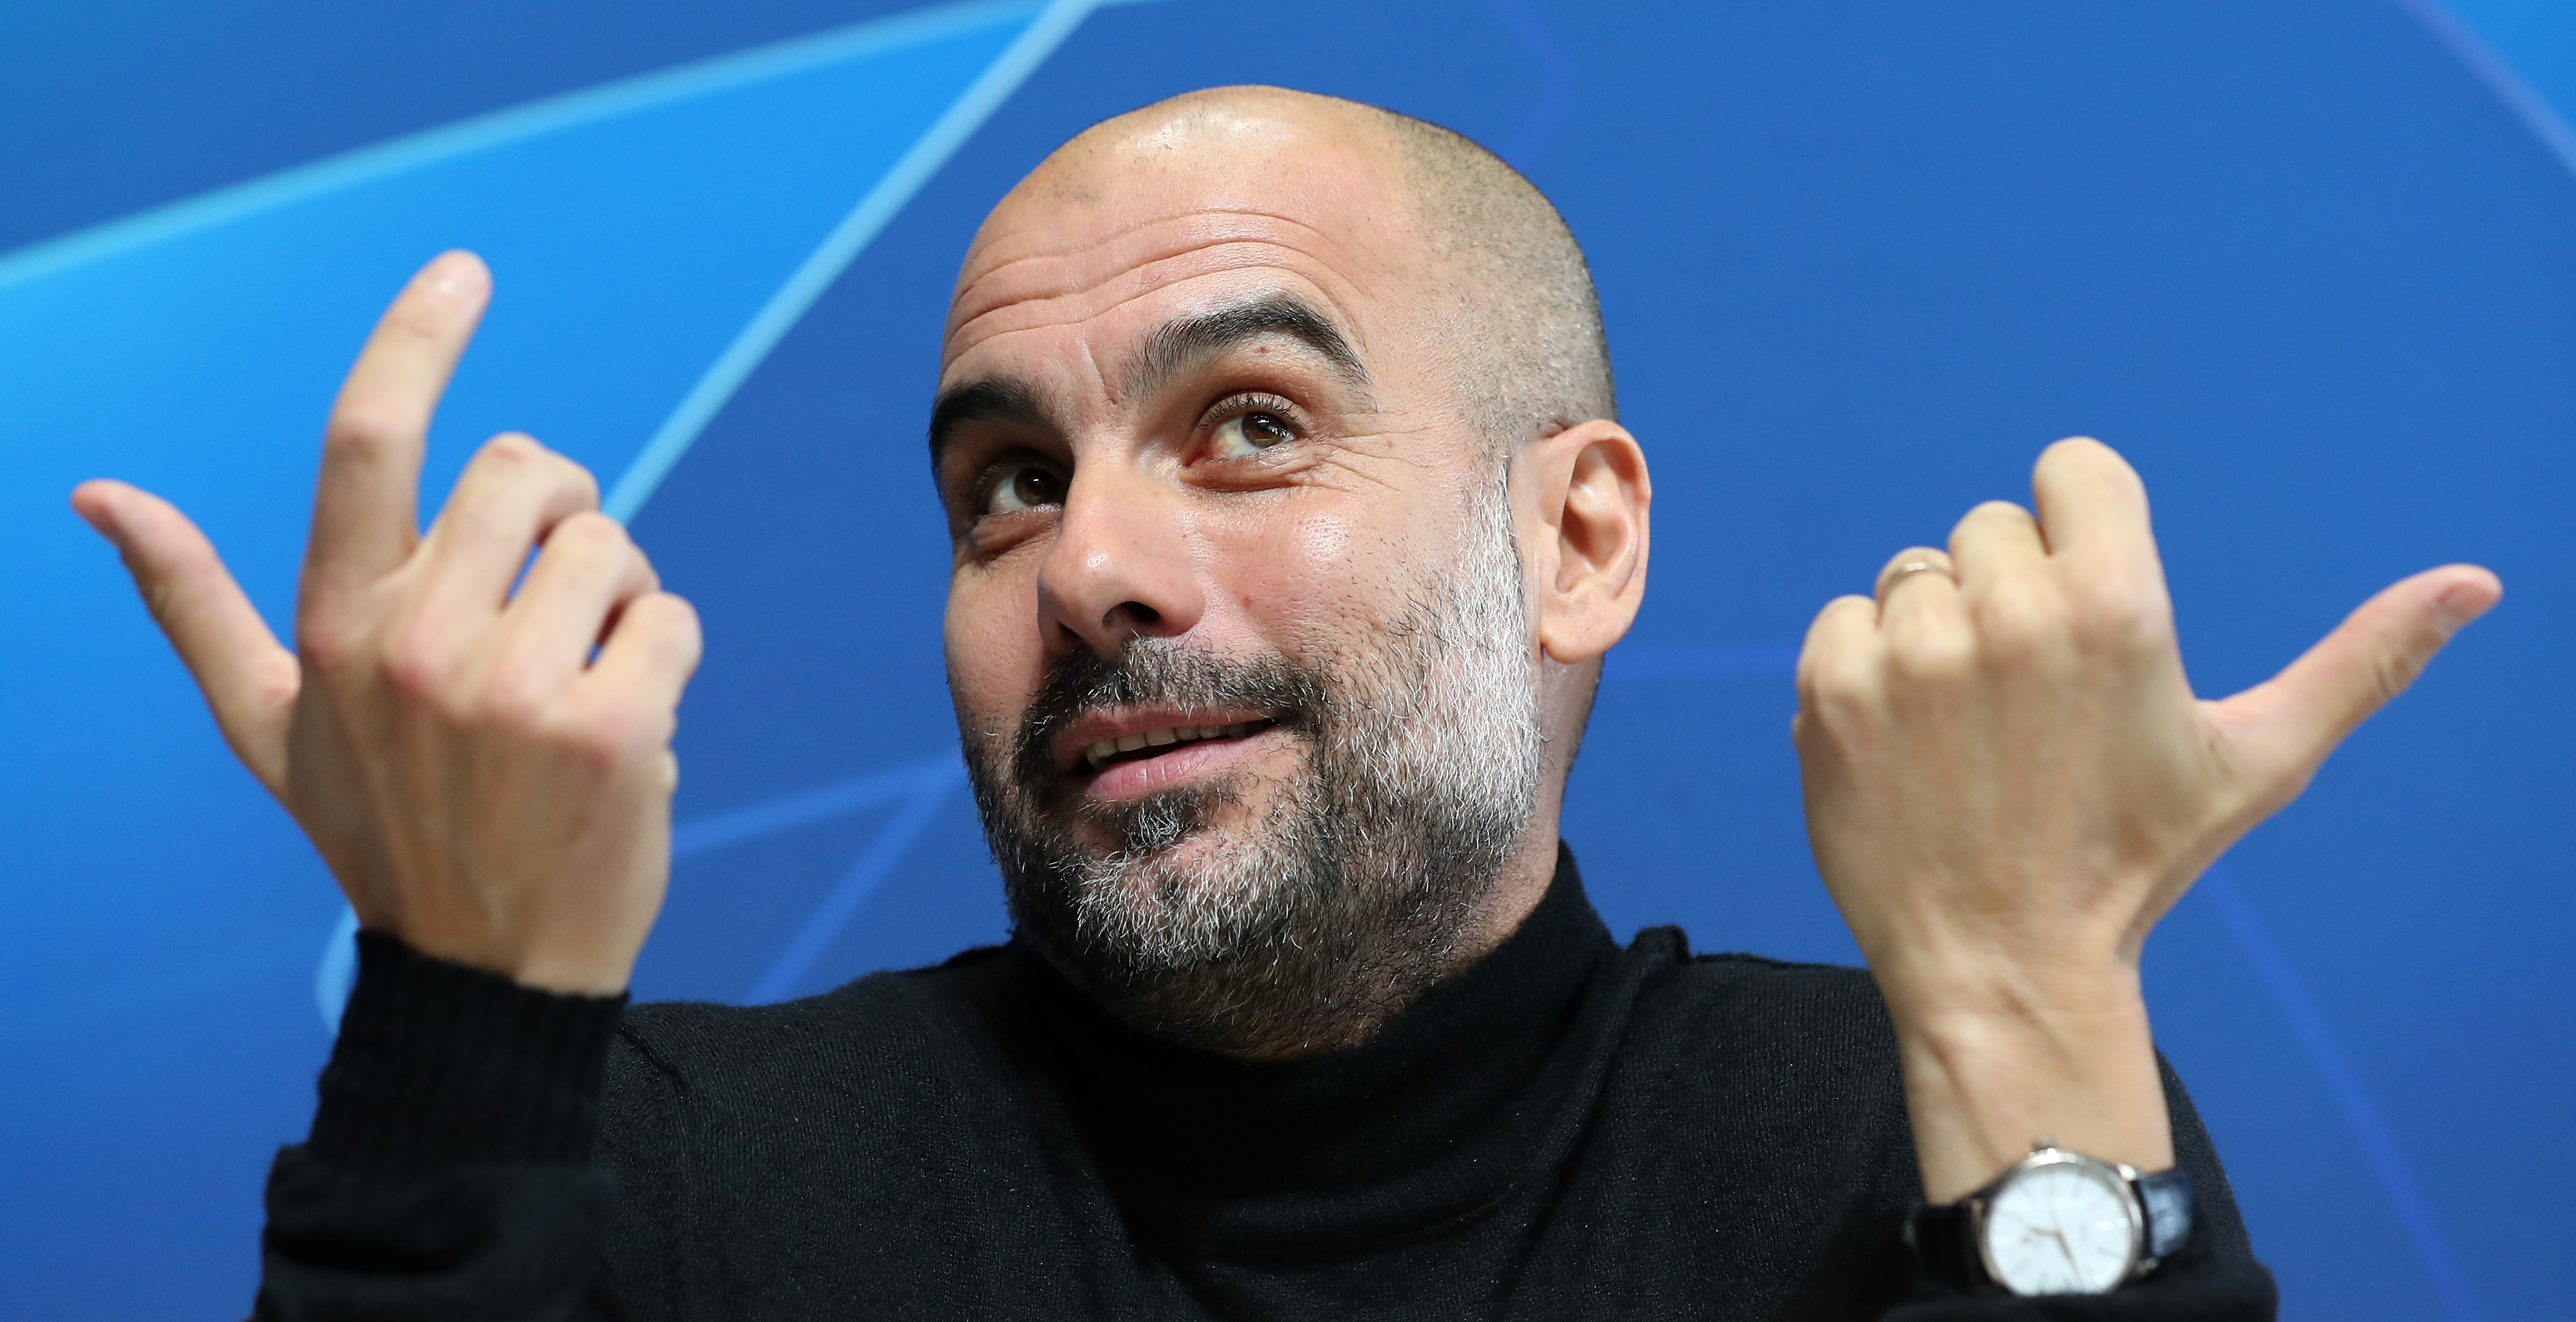 Manchester City manager Pep Guardiola has been praising Raheem Sterling